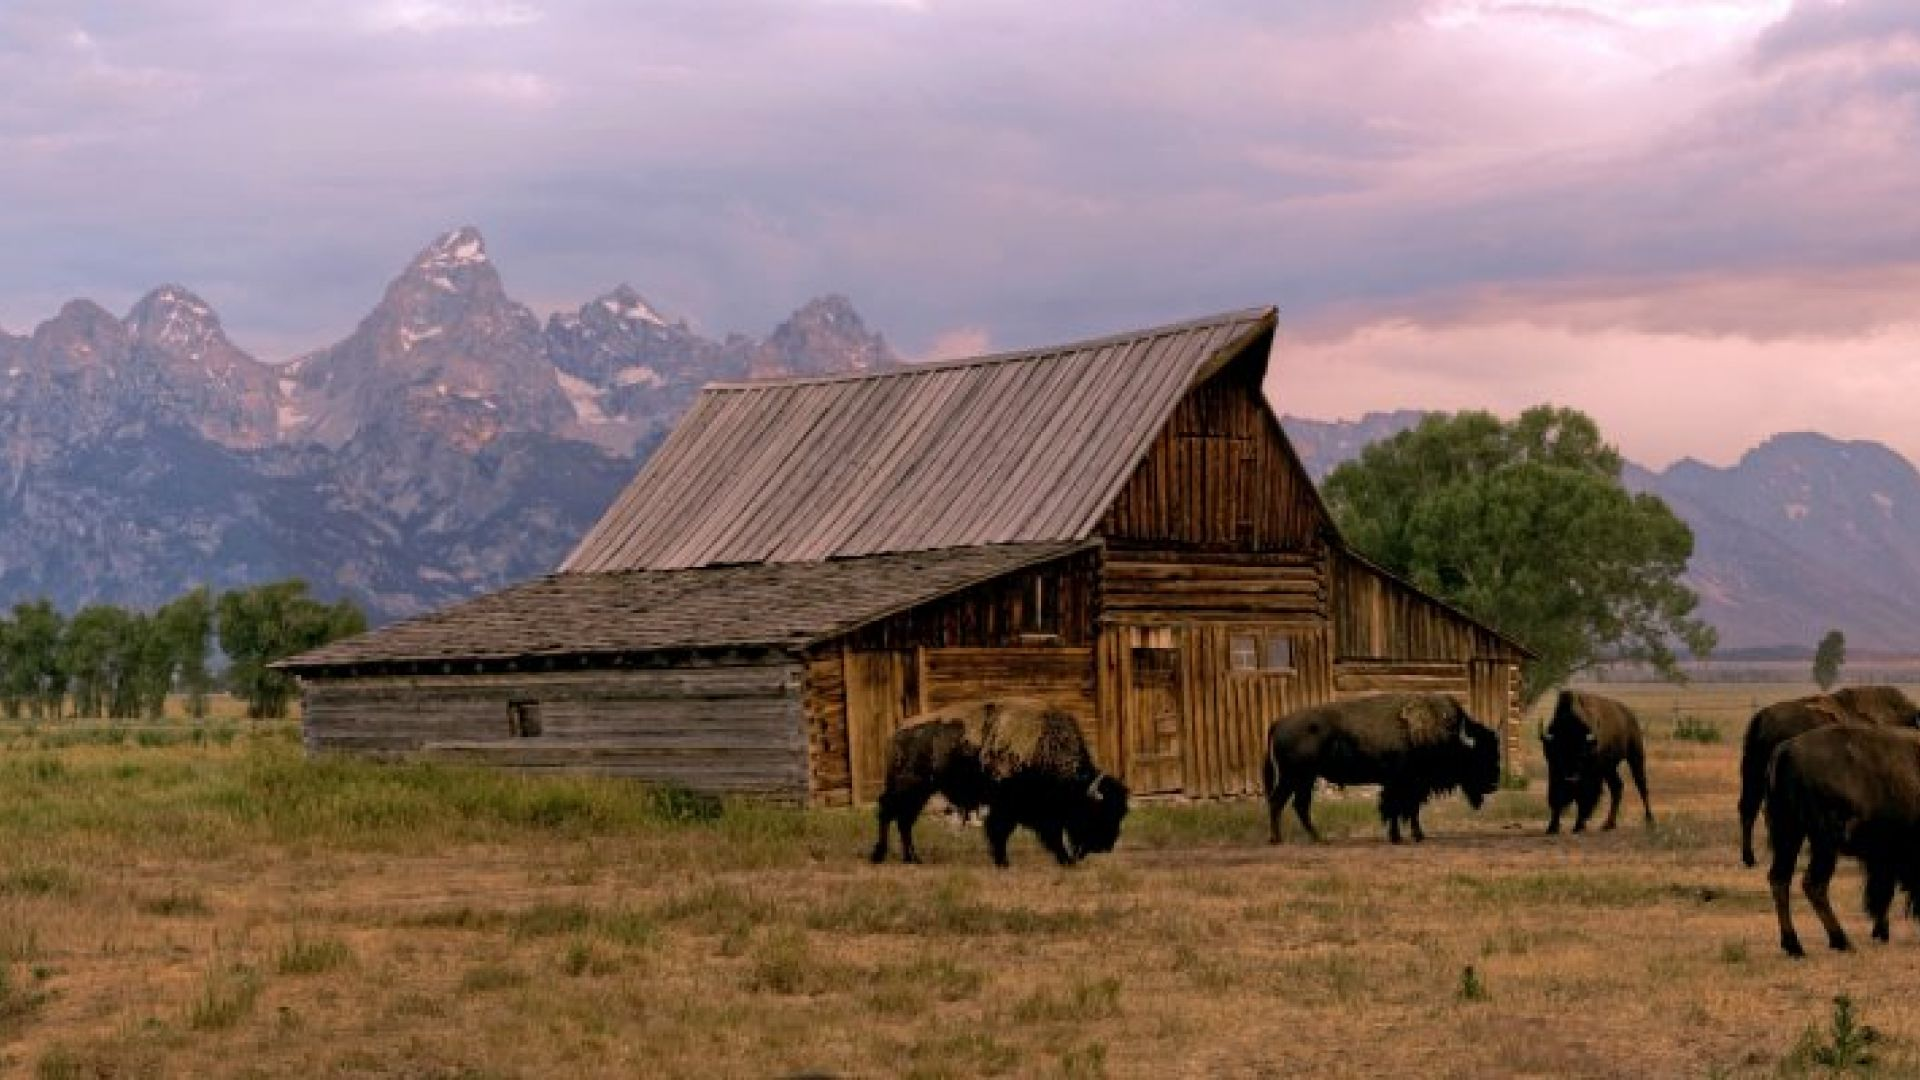 Things to do in jackson hole jackson hole central for Things to do in jackson hole wyoming